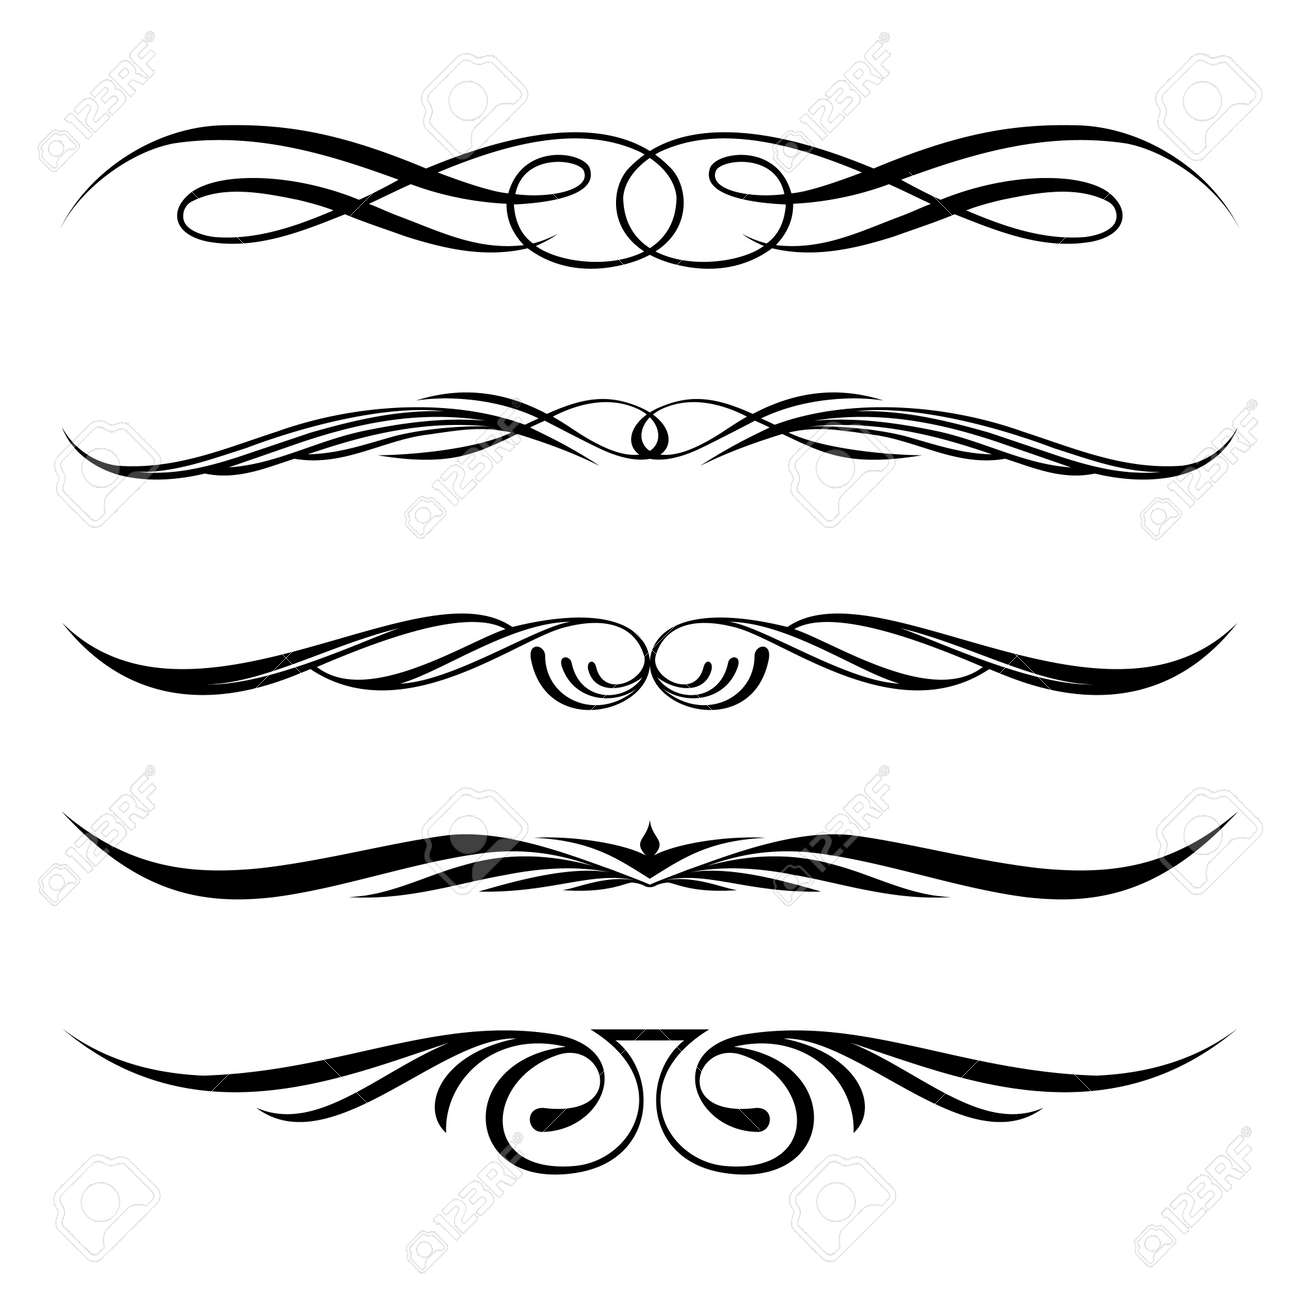 Decorative Borders For Word Swirl Border Images Stock Pictures Royalty Free Swirl Border